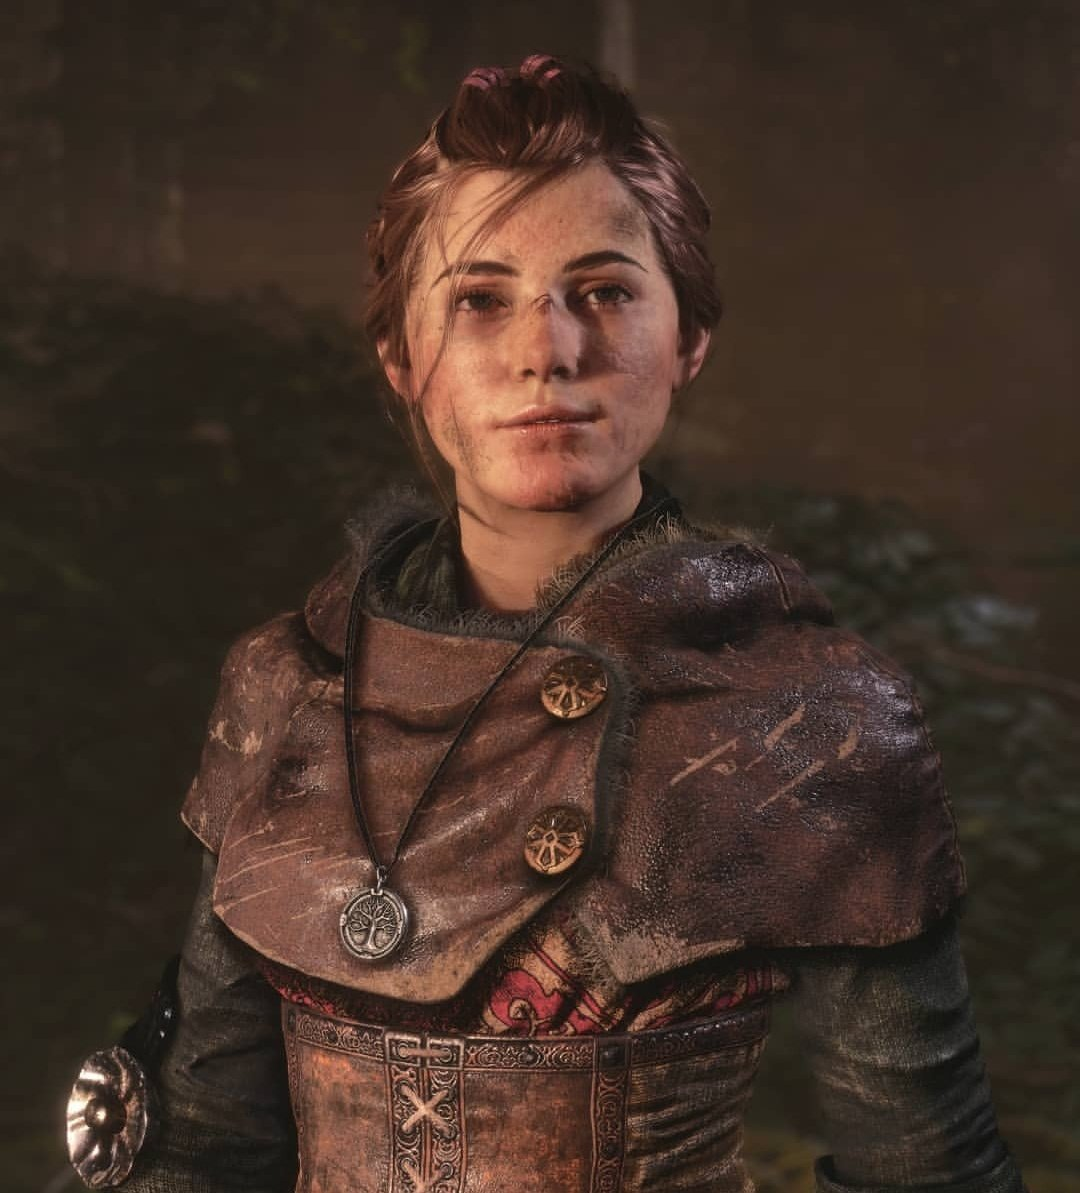 """A Plague Tale Community on Twitter: """"Amicia is a young, headstrong girl  with an assertive personality. She wants a life filled with adventure. She  shows a progressive attitude, but she is also"""